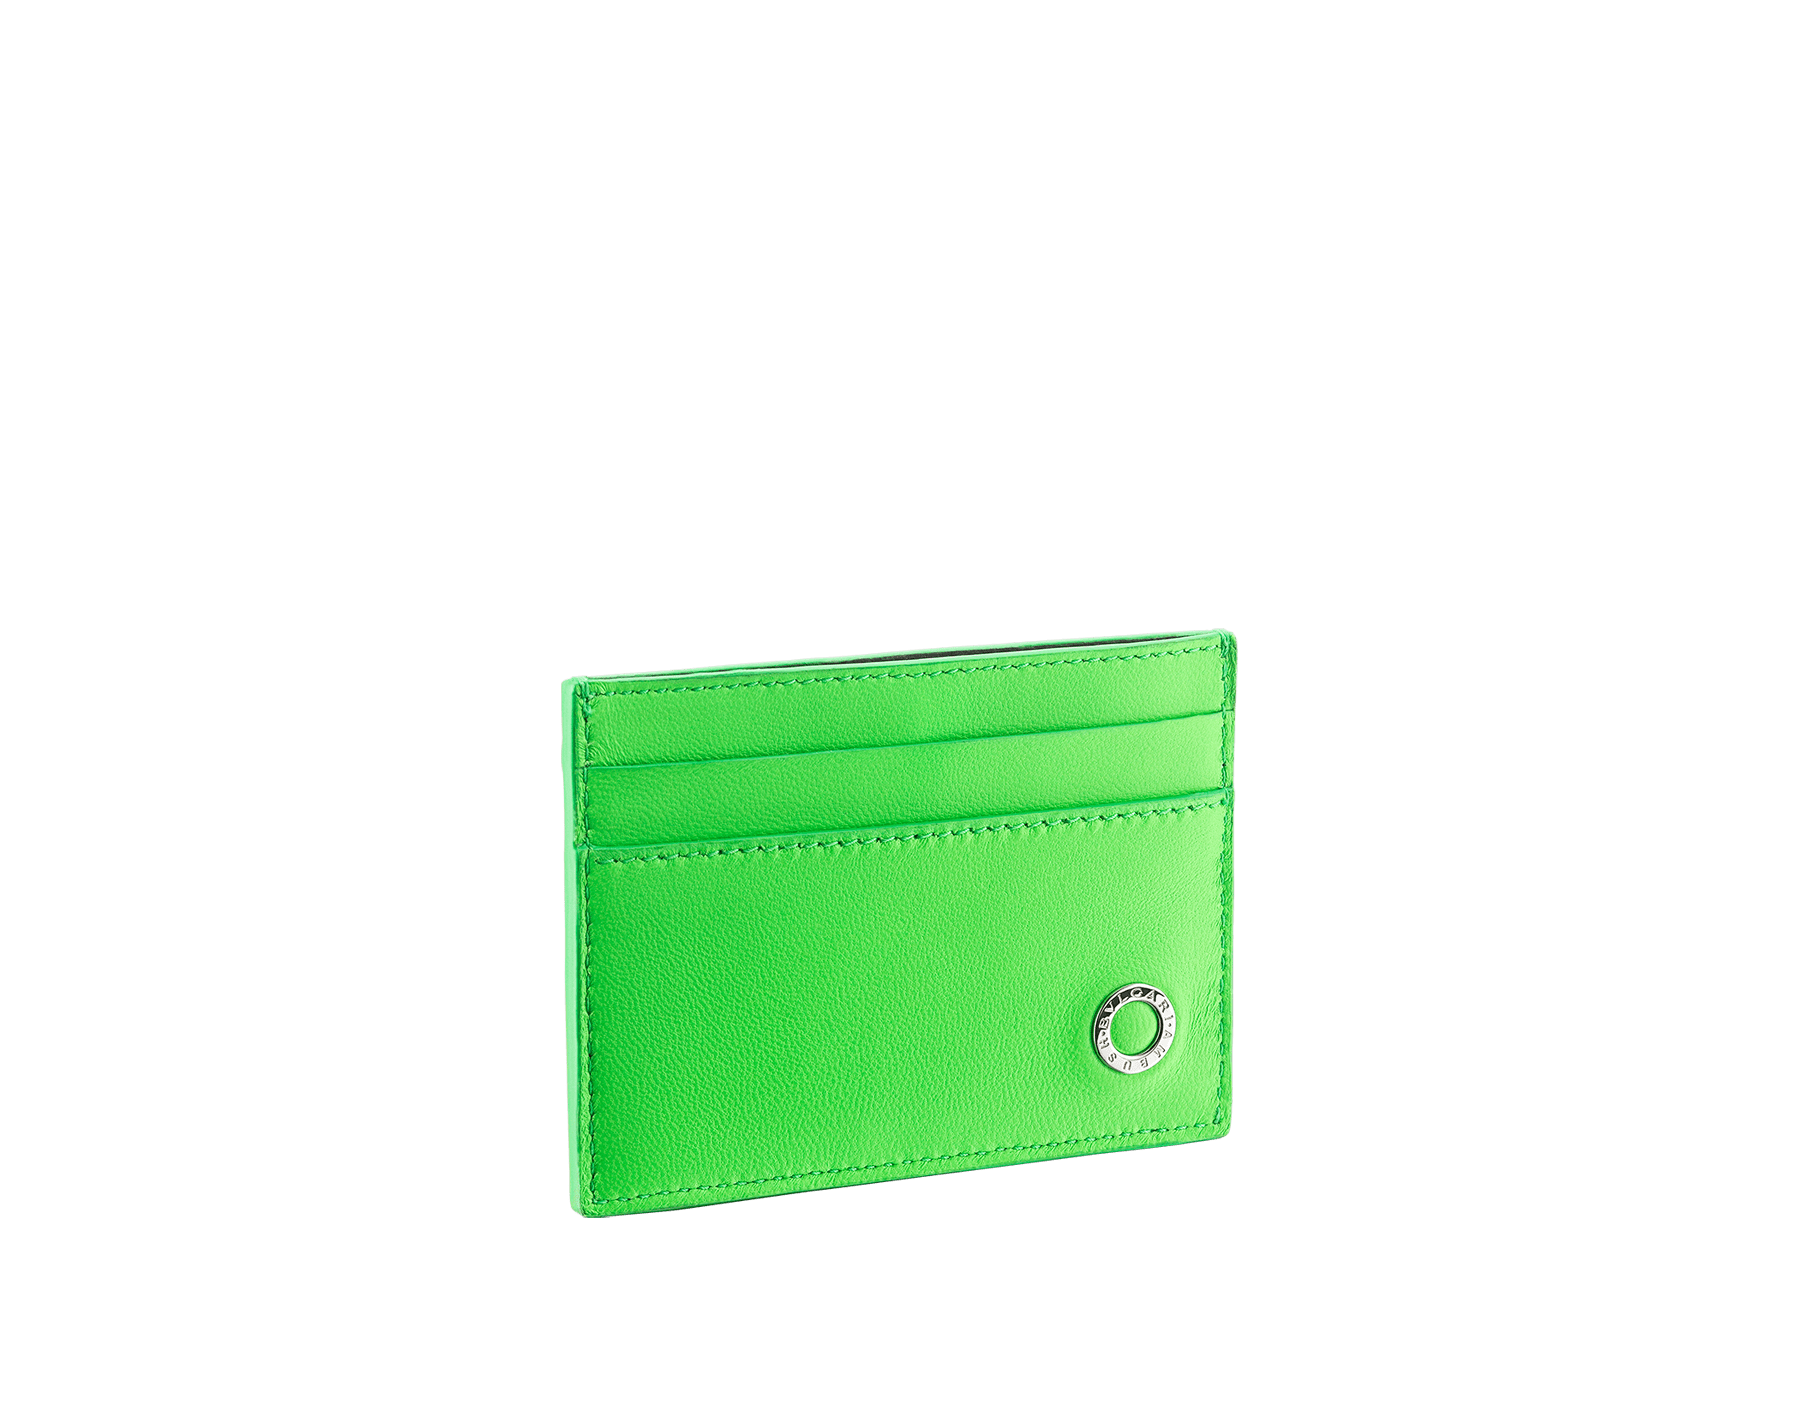 """Ambush x Bvlgari"" card holder in bright green nappa leather. Palladium plated brass ""BVLGARI AMBUSH"" décor on one side and special ""BVLGARI AMBUSH"" logo print on the other. Limited edition. YA-CCHOLDER image 1"